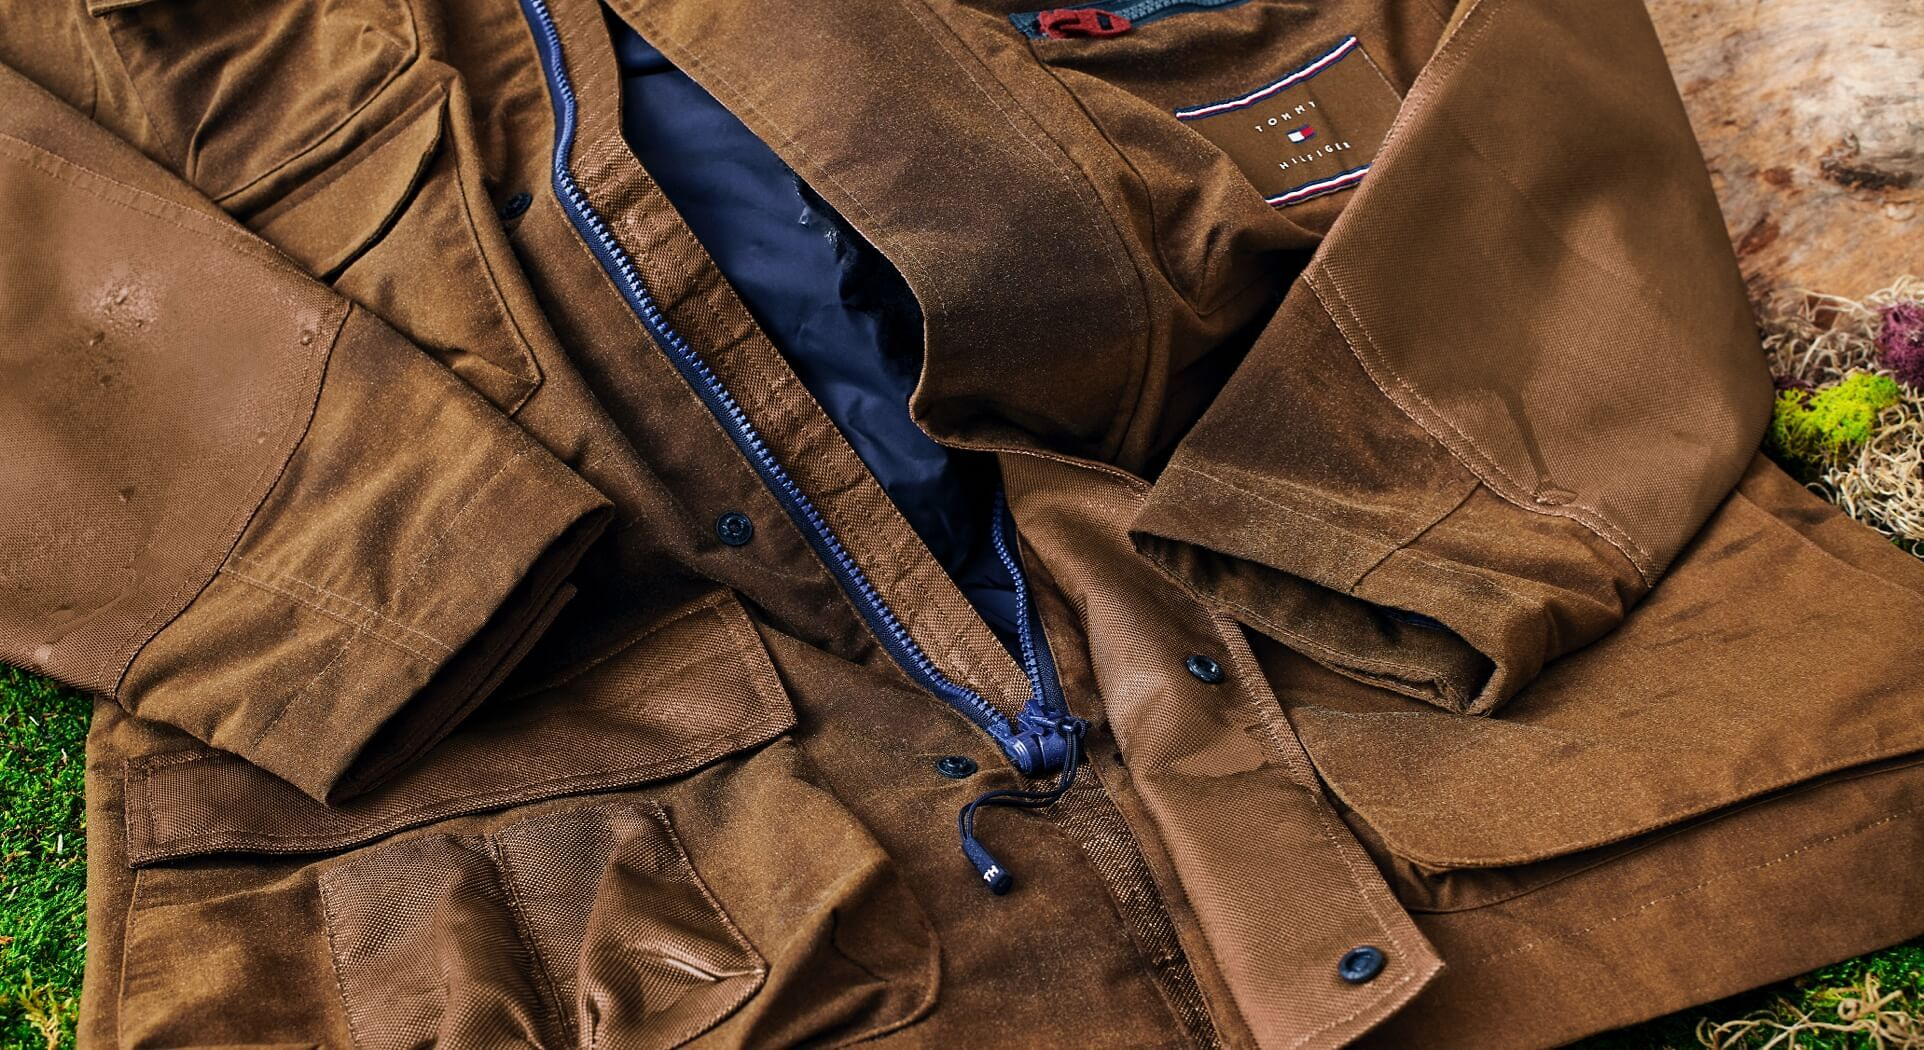 SHOT_3_ADP_ONE-HANDED-ZIPPERS_076_c_R150_D